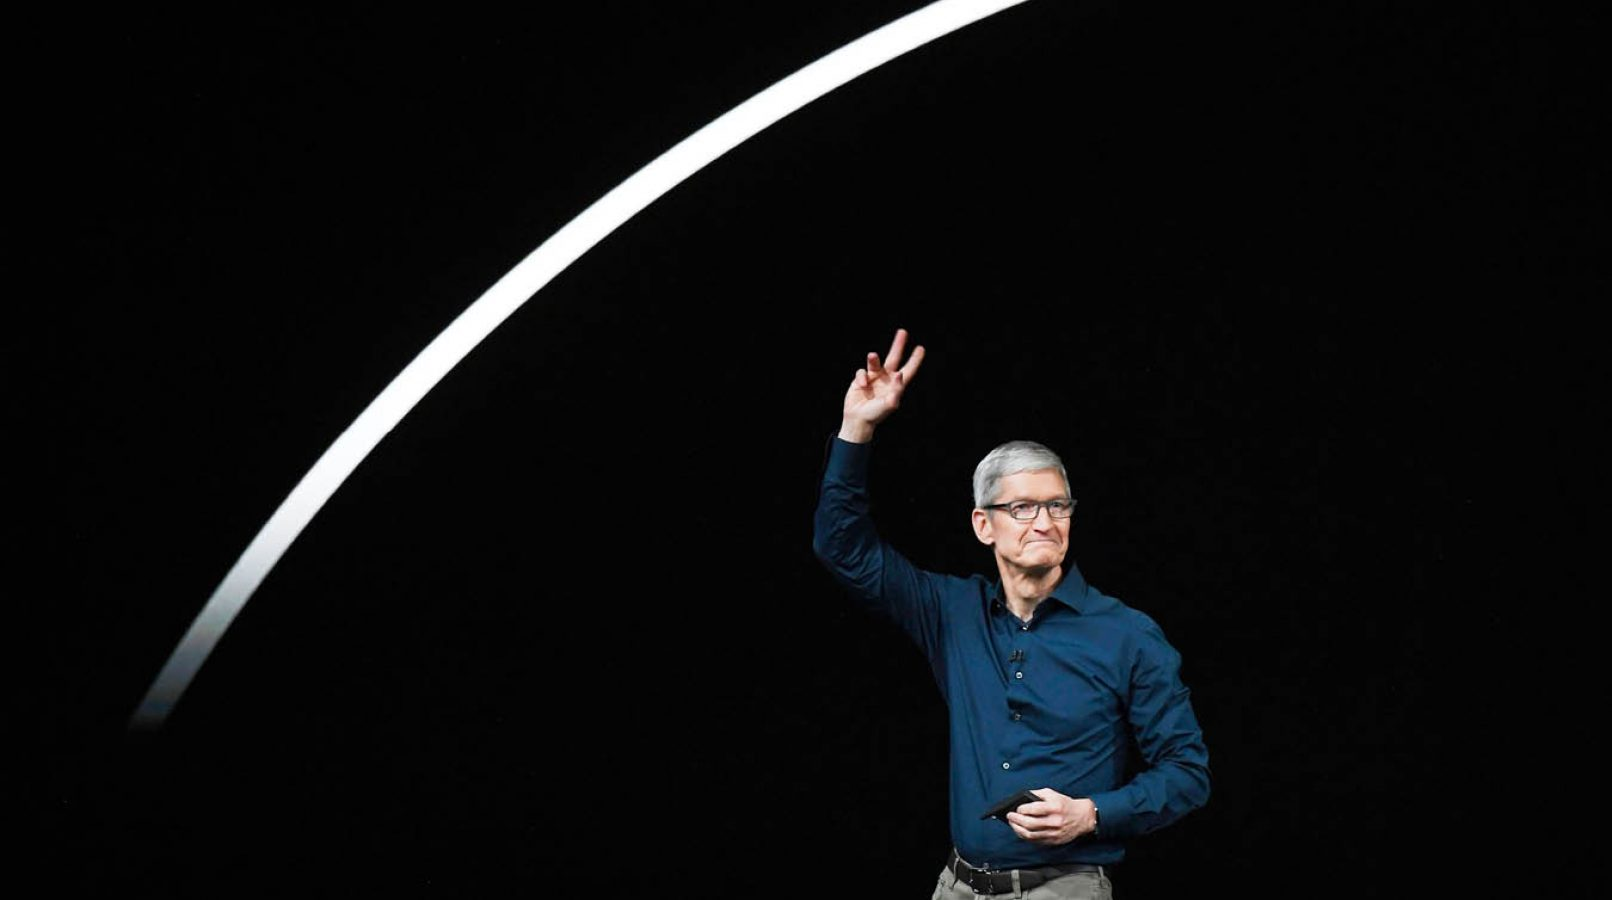 How-To-Use-Apple-Events-to-Build-Charismatic-Leader-Articles.jpg